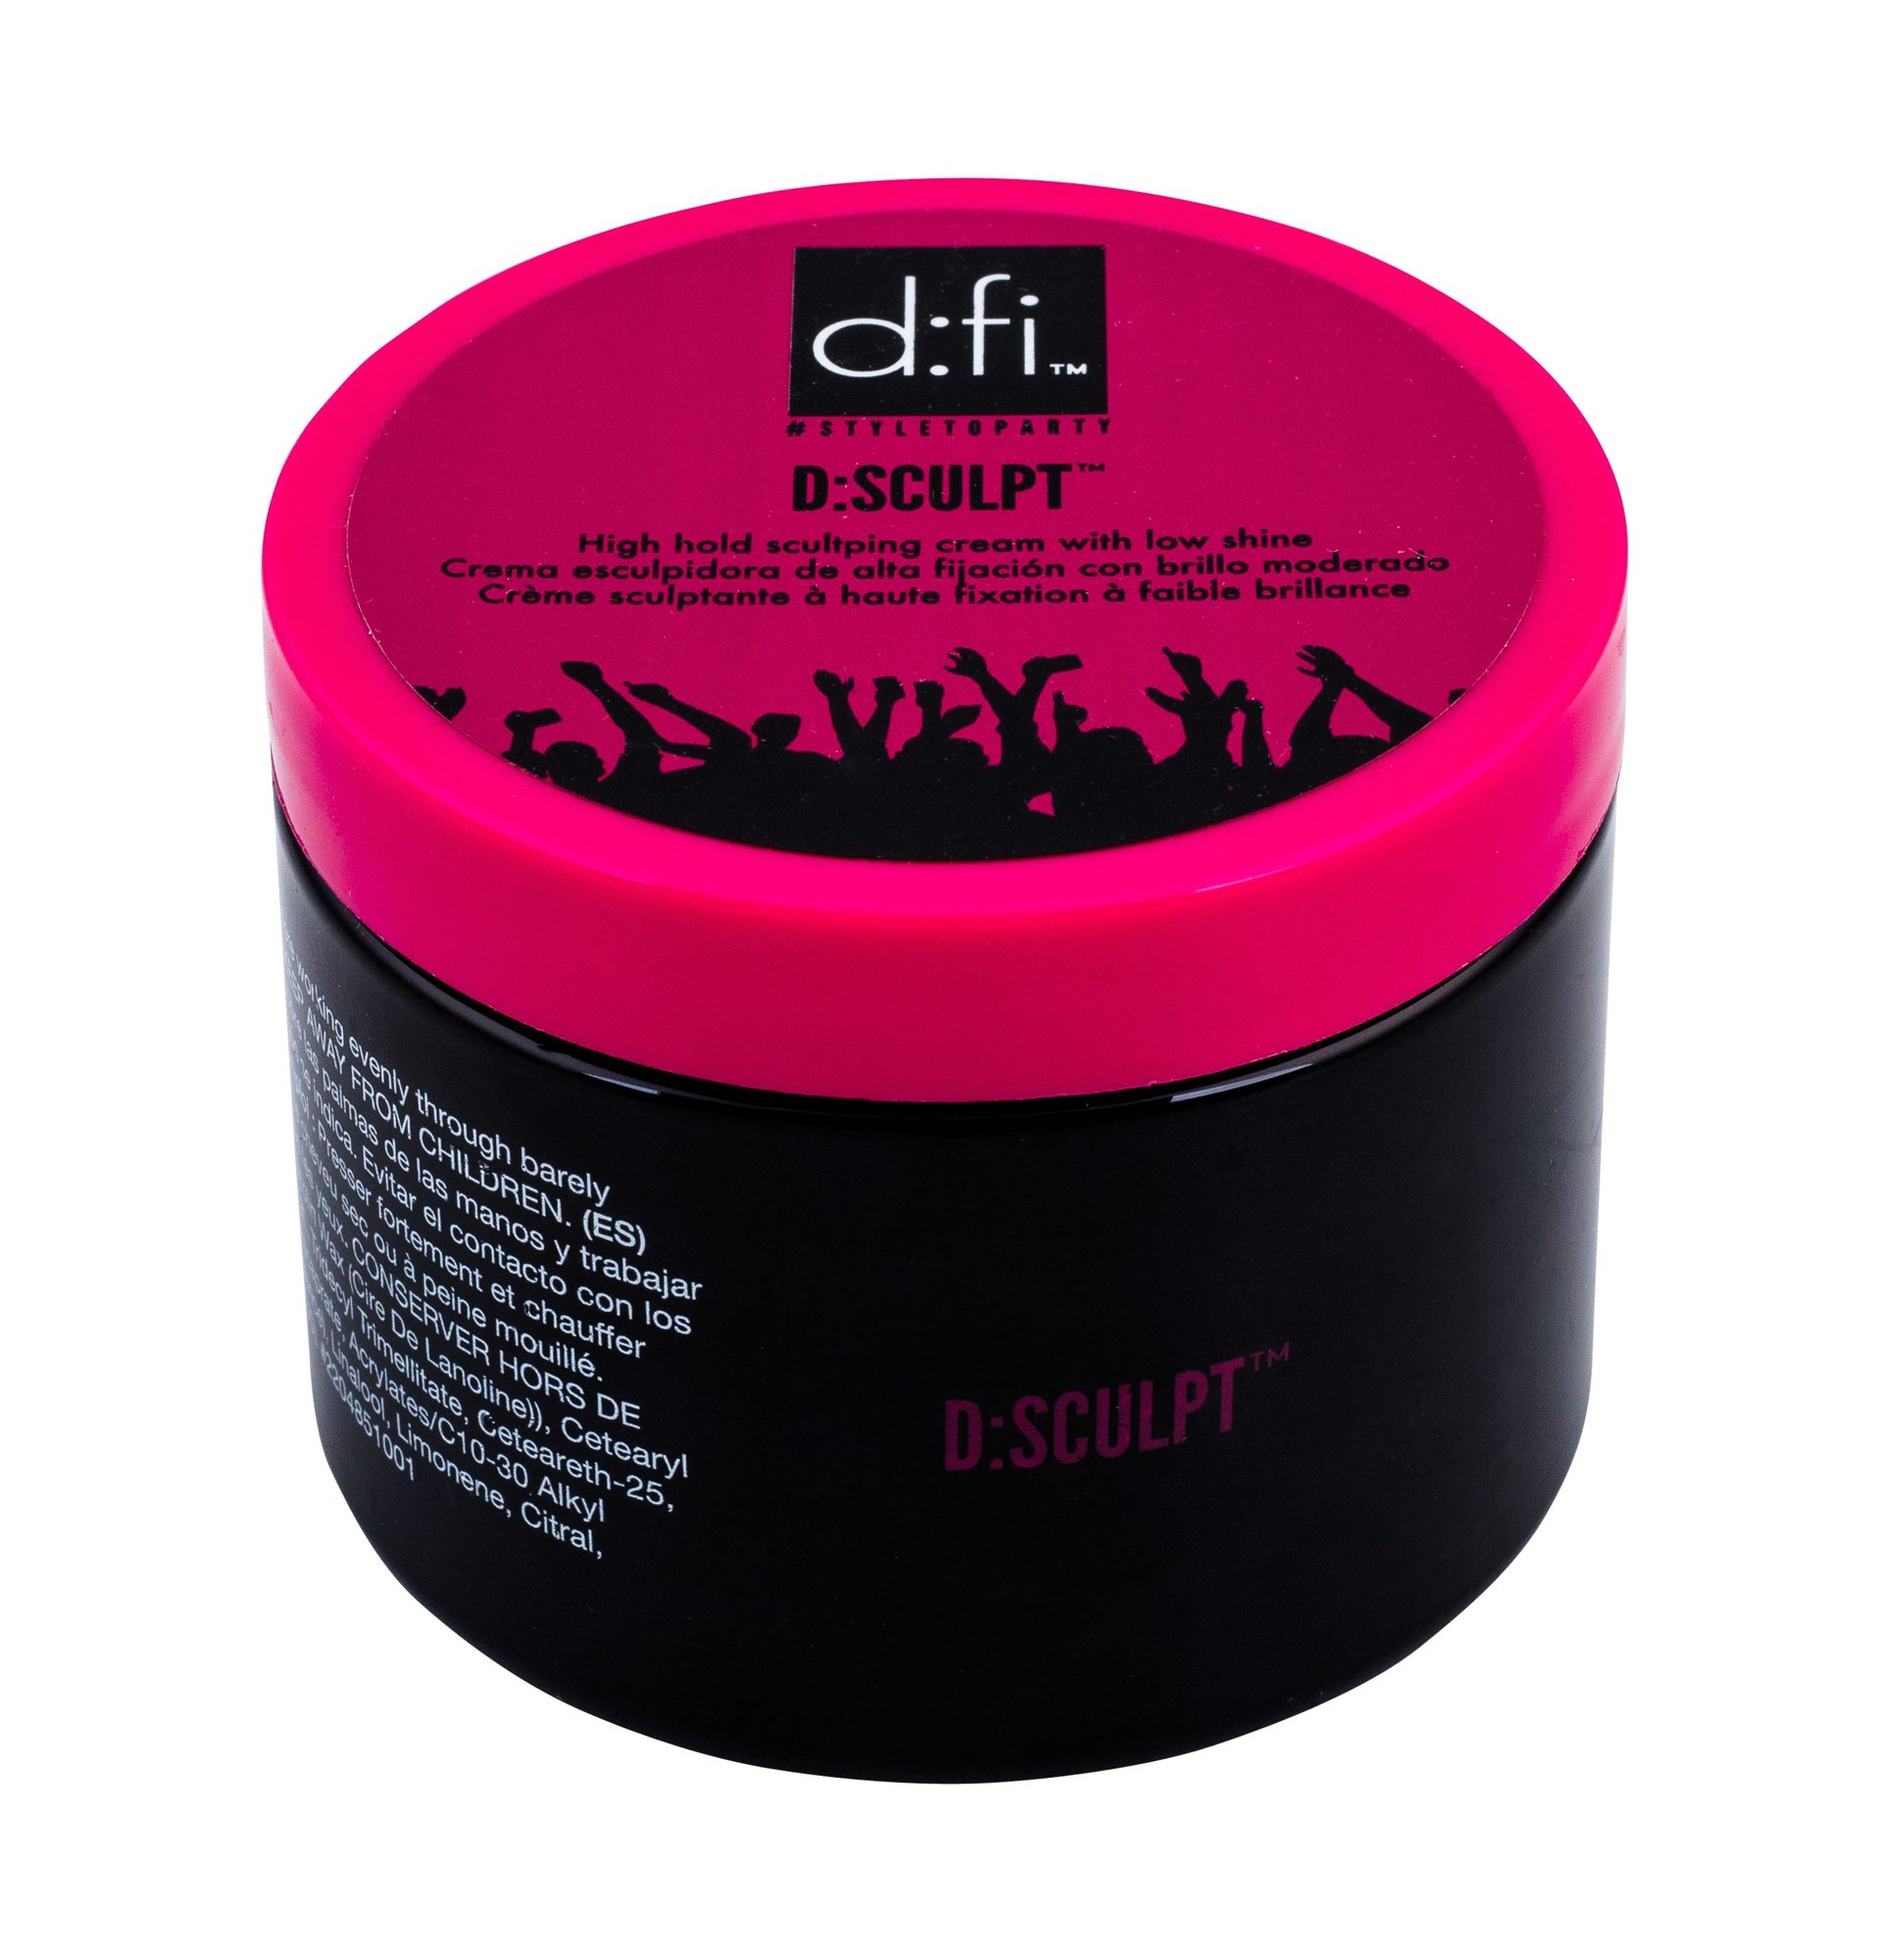 Revlon Professional d:fi Hair Cream 150ml